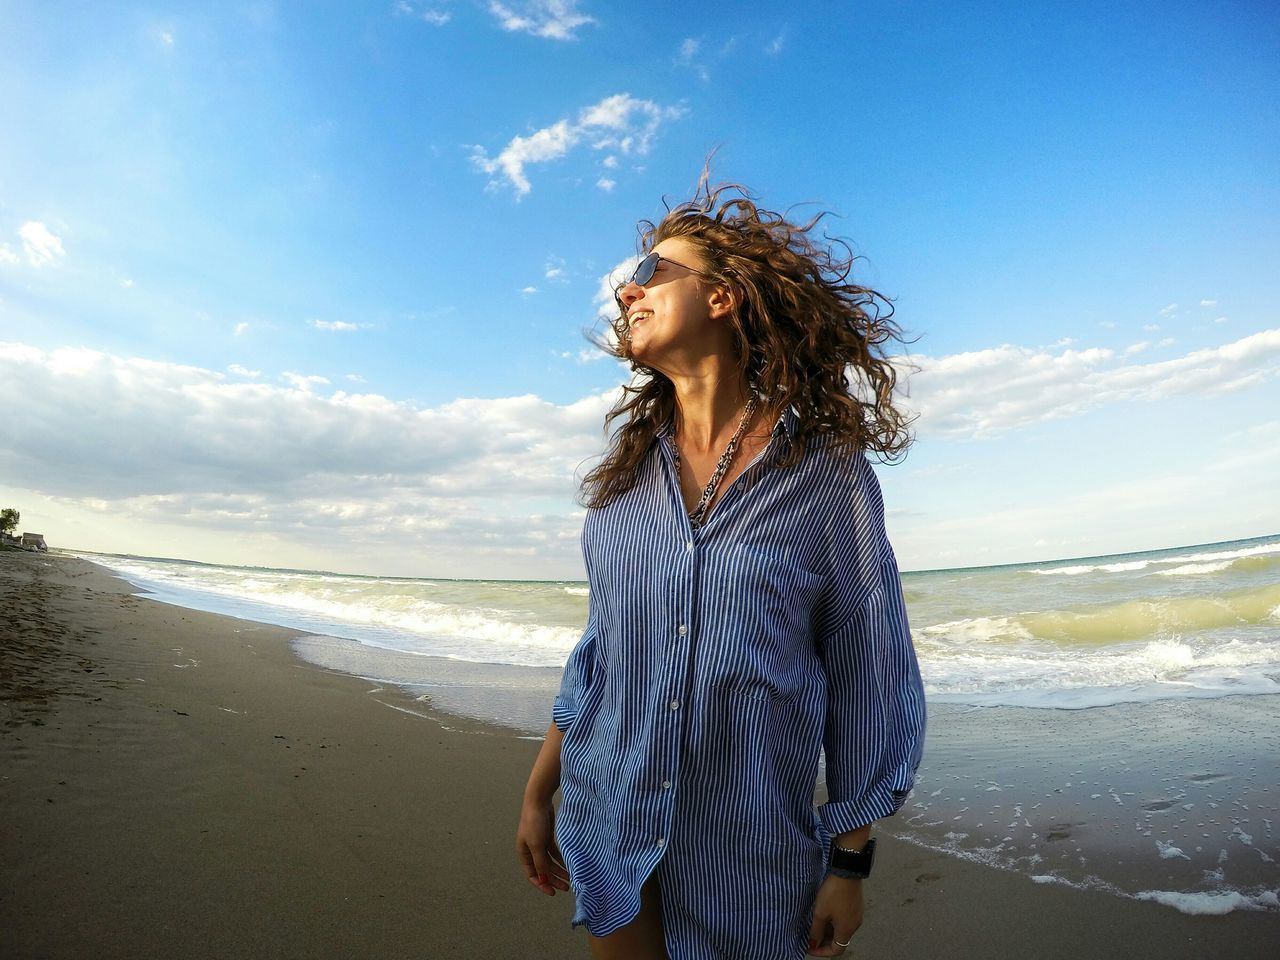 Beautiful stock photos of mädchen, beach, sky, one person, one woman only